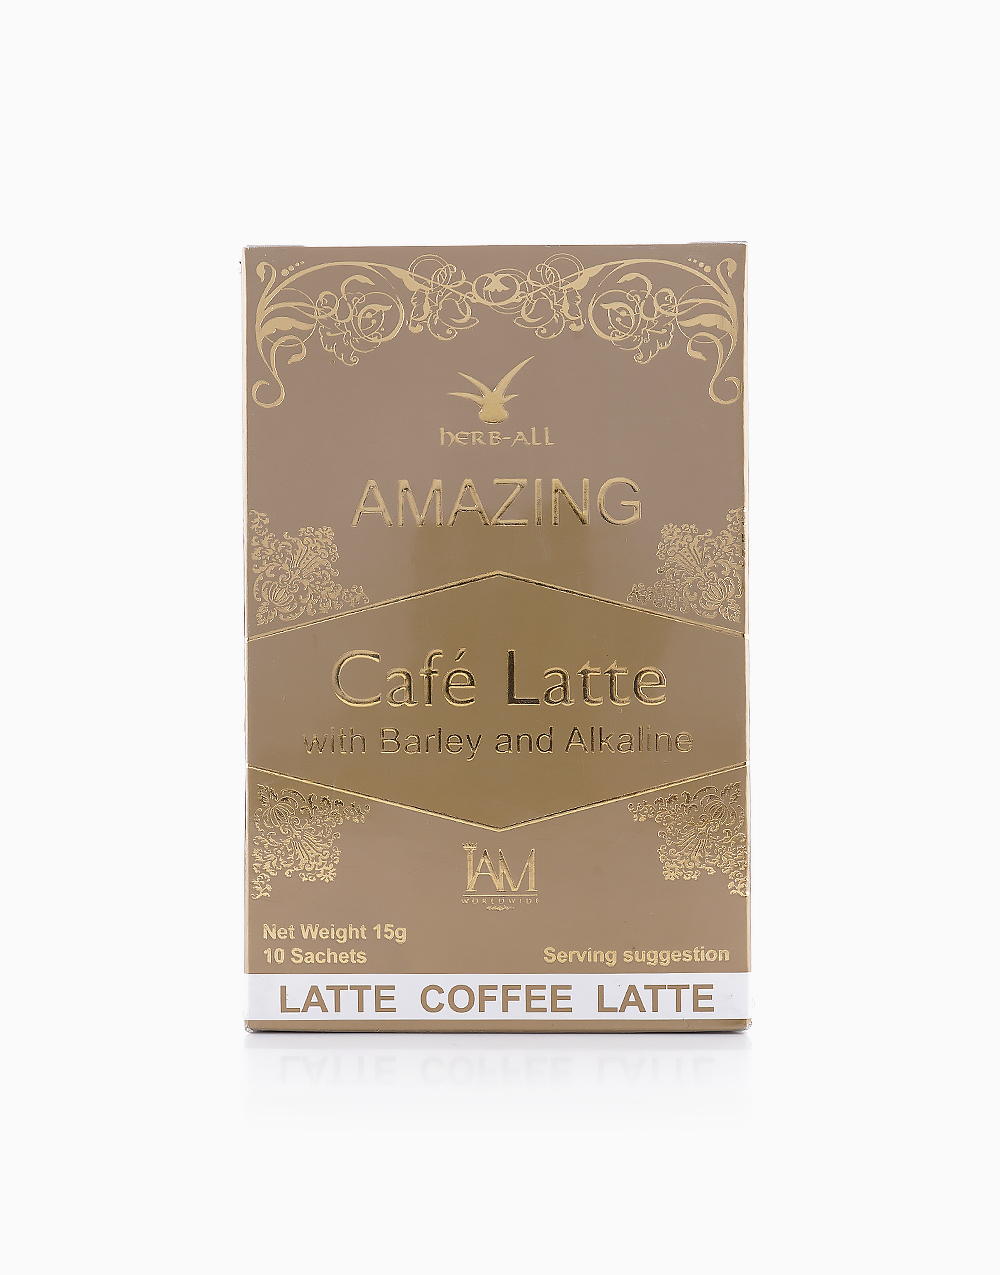 Cafe Latte with Barley and Alkaline (10 Sachets) by iAMWorldwide